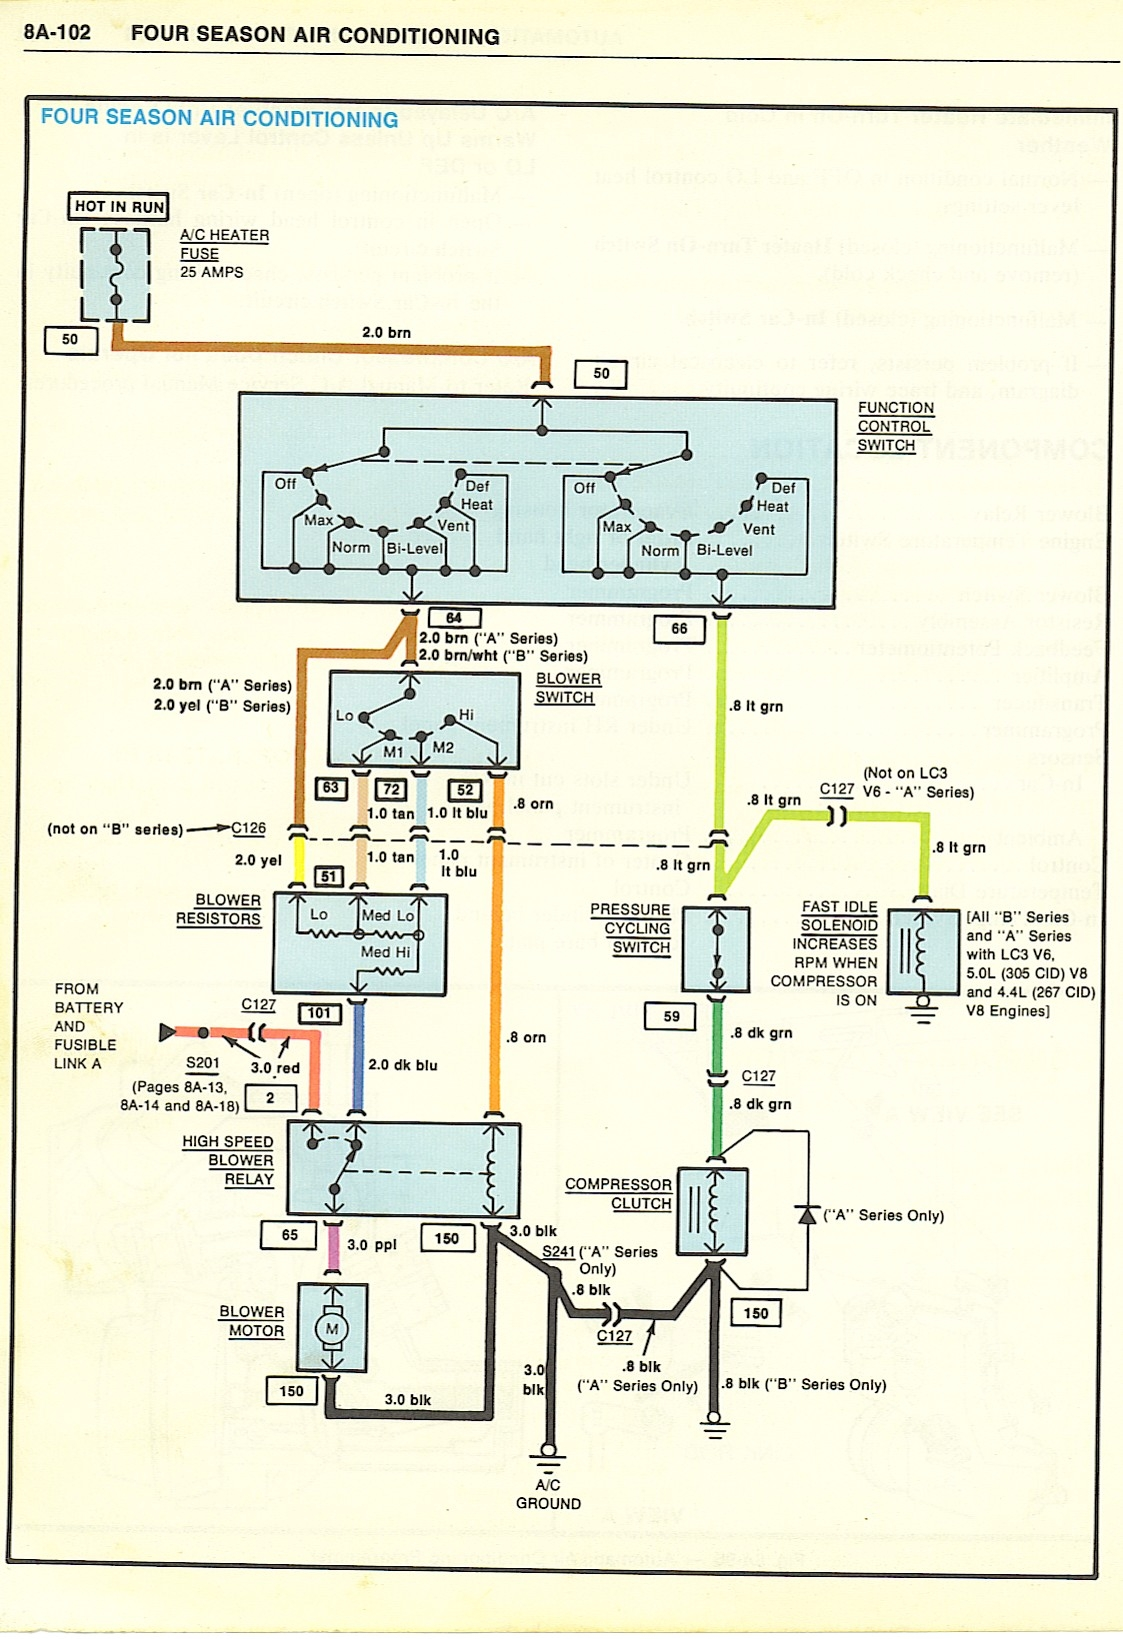 1968 FourSeasonAirConditioner chevy diagrams 1980 corvette wiring diagram at creativeand.co